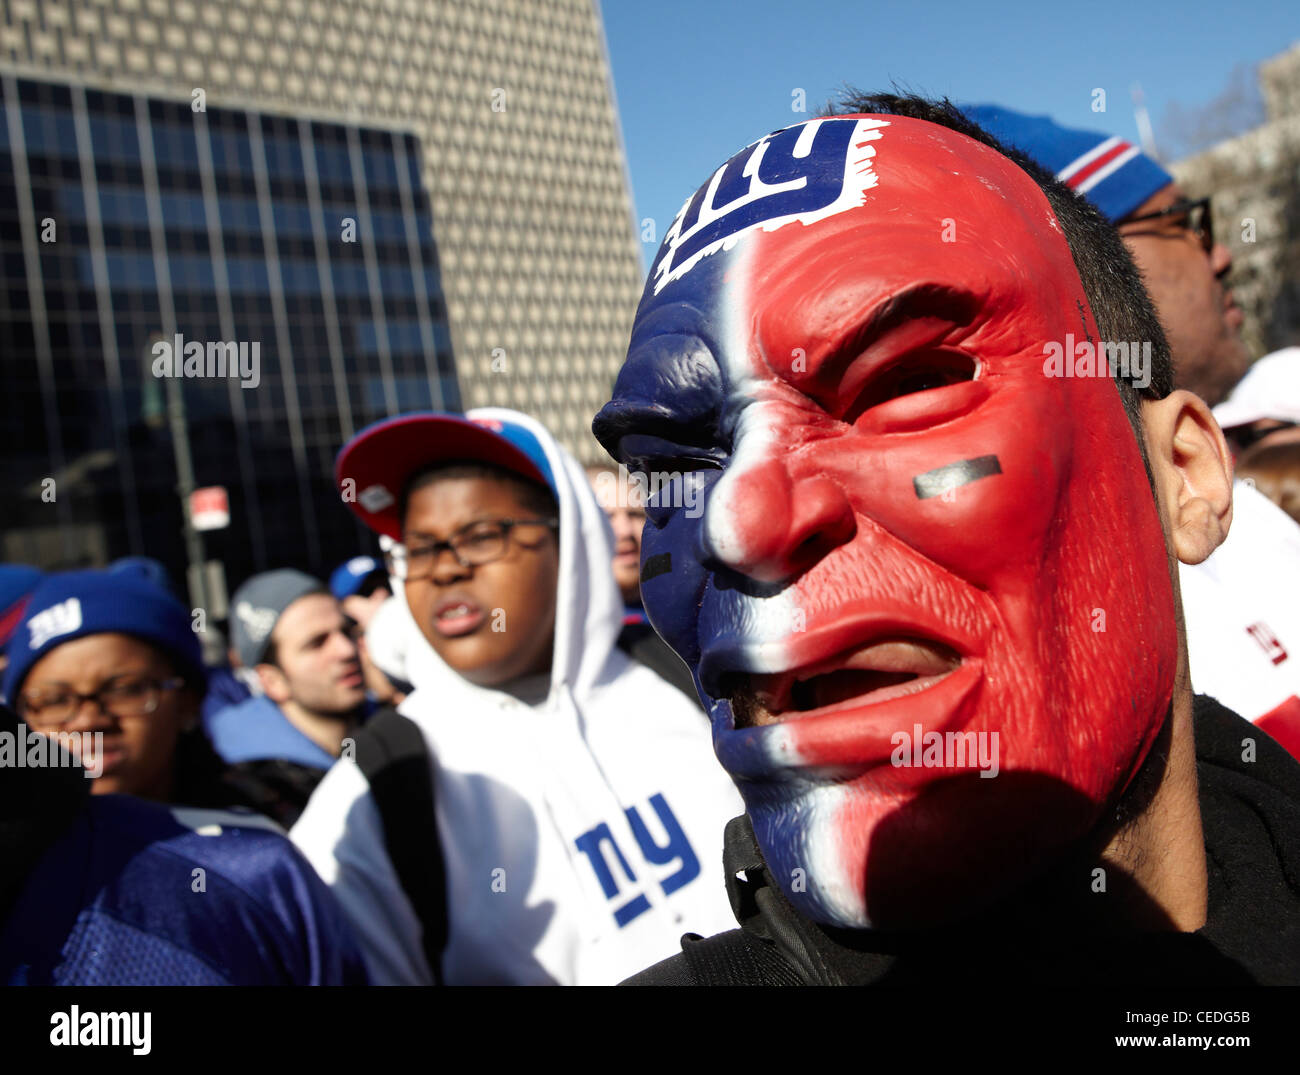 New York Giant fan in red mask, ticker tape, NY, USA - Stock Image